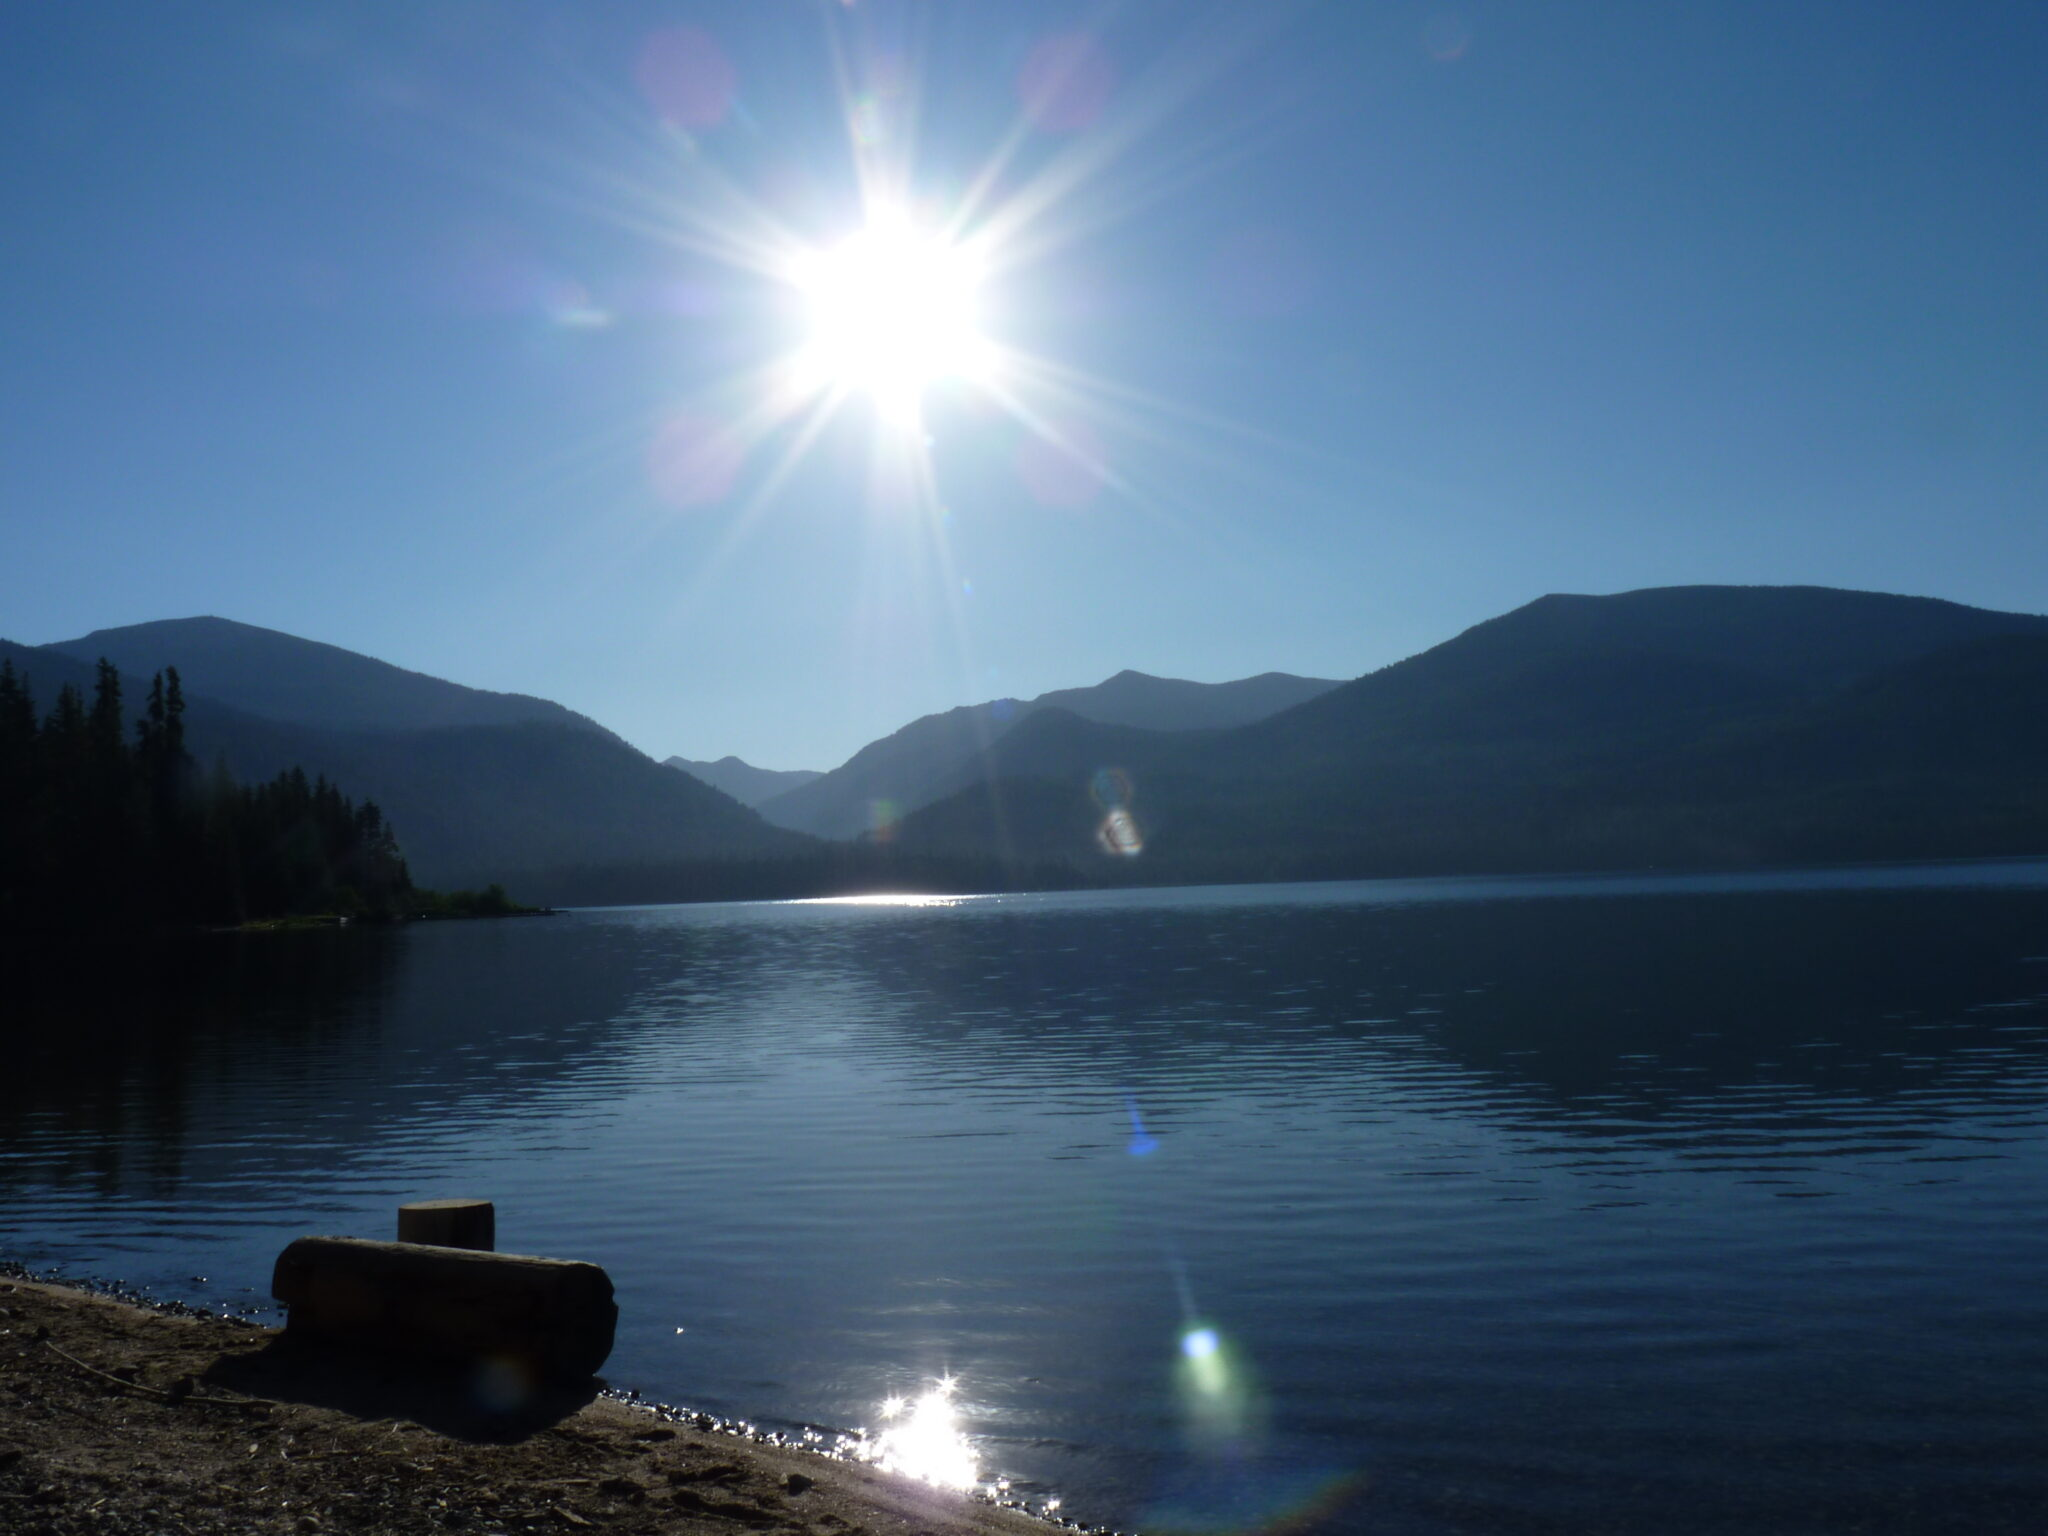 Still water of Priest Lake with mountain peaks and sun in the background.